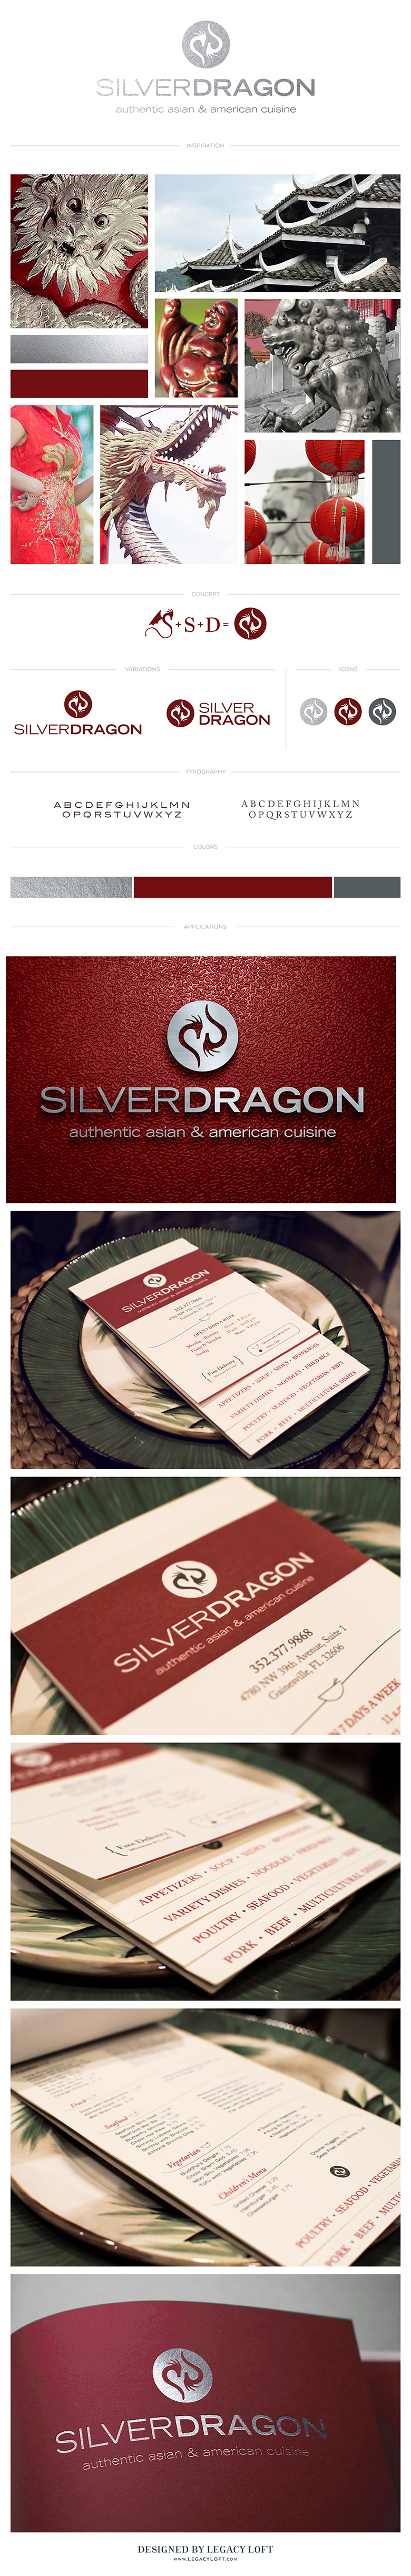 silver-dragon-restaurant-branding-graphic-design-brand-board